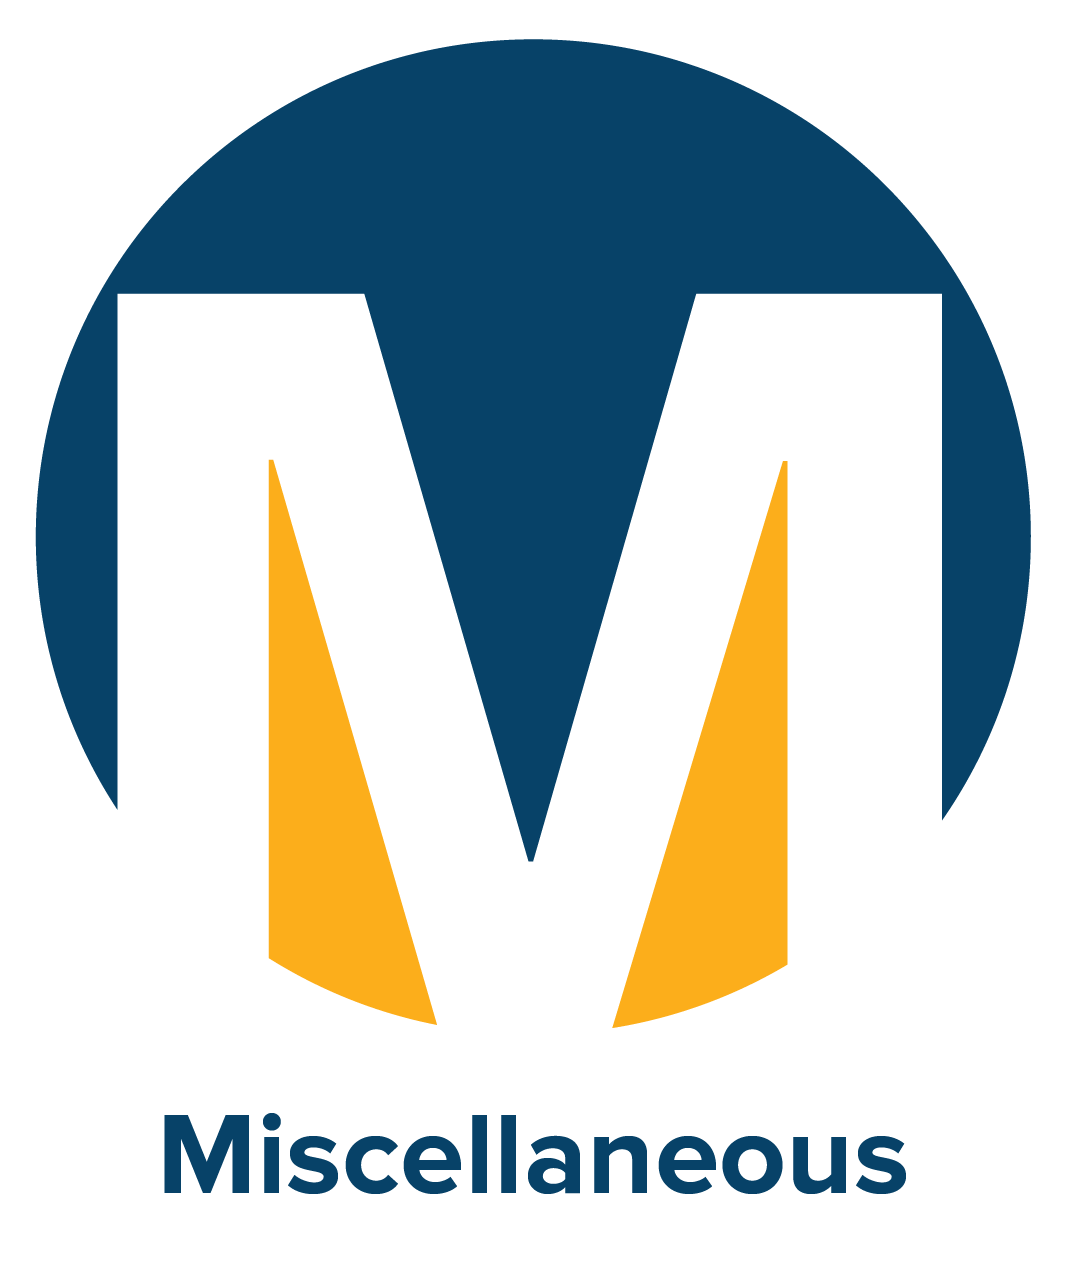 Miscellaneous - Certification Training & IT Courses with Guaranteed ResultsVendor Logo